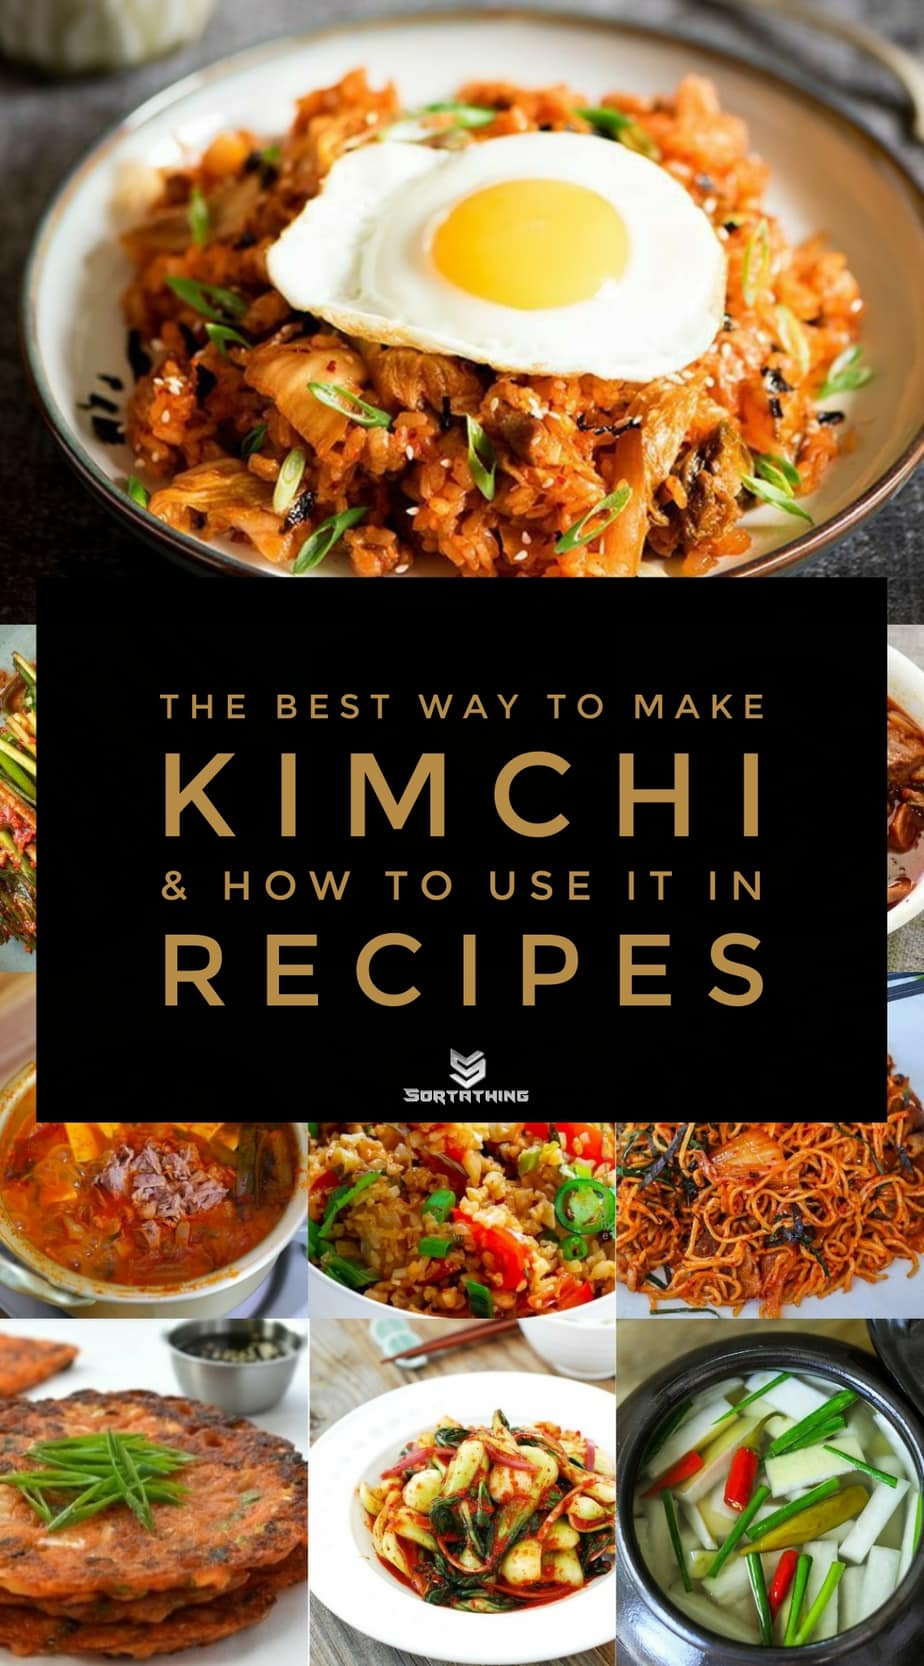 How to make kimchi and best recipes